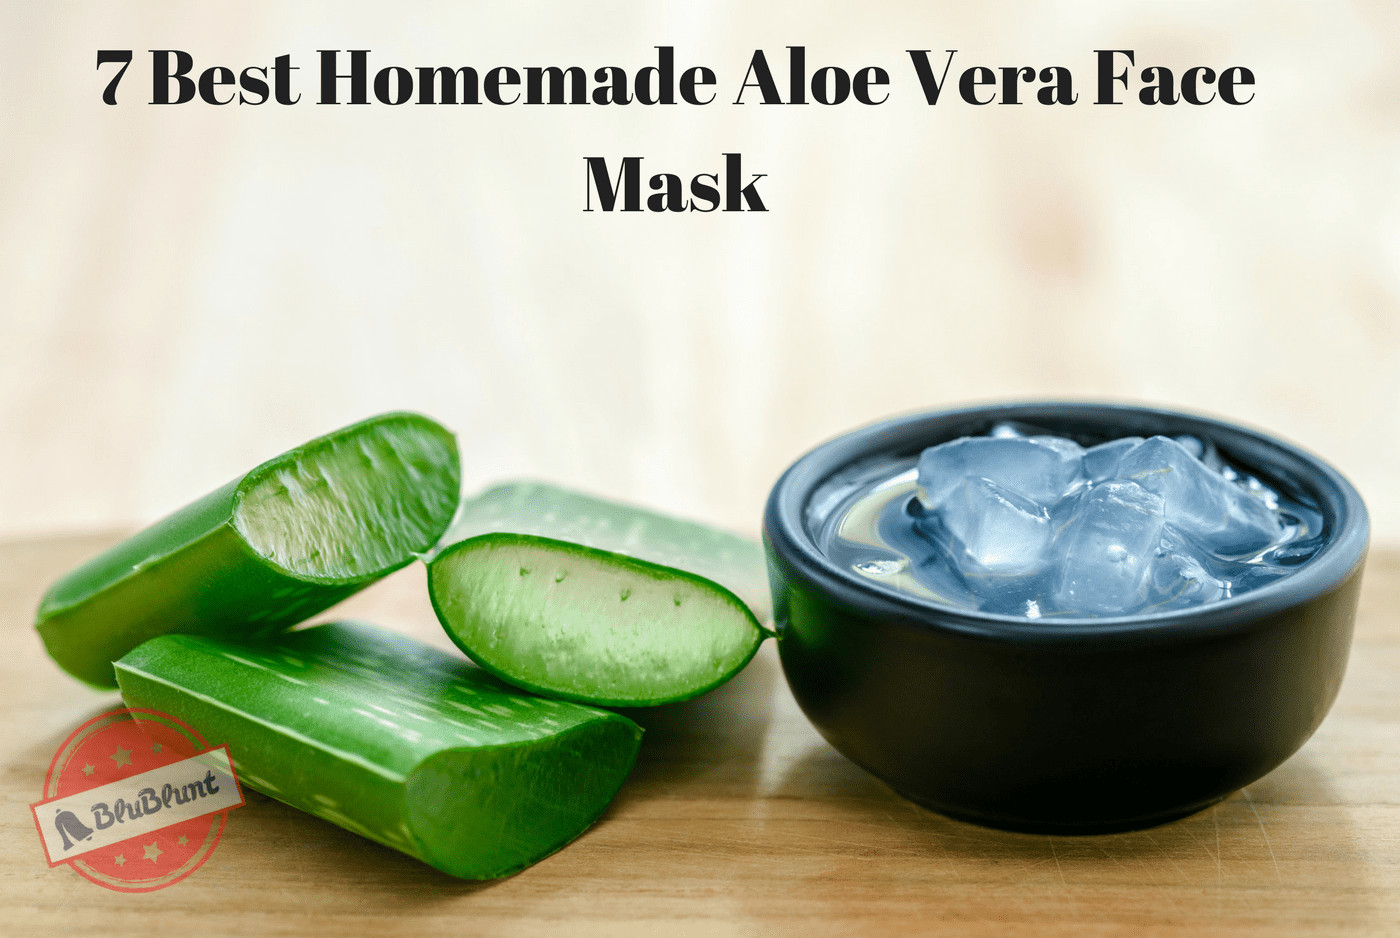 Best ideas about Aloe Face Mask DIY . Save or Pin 7 Best Homemade Aloe Vera Face Mask for all Skin Problems Now.